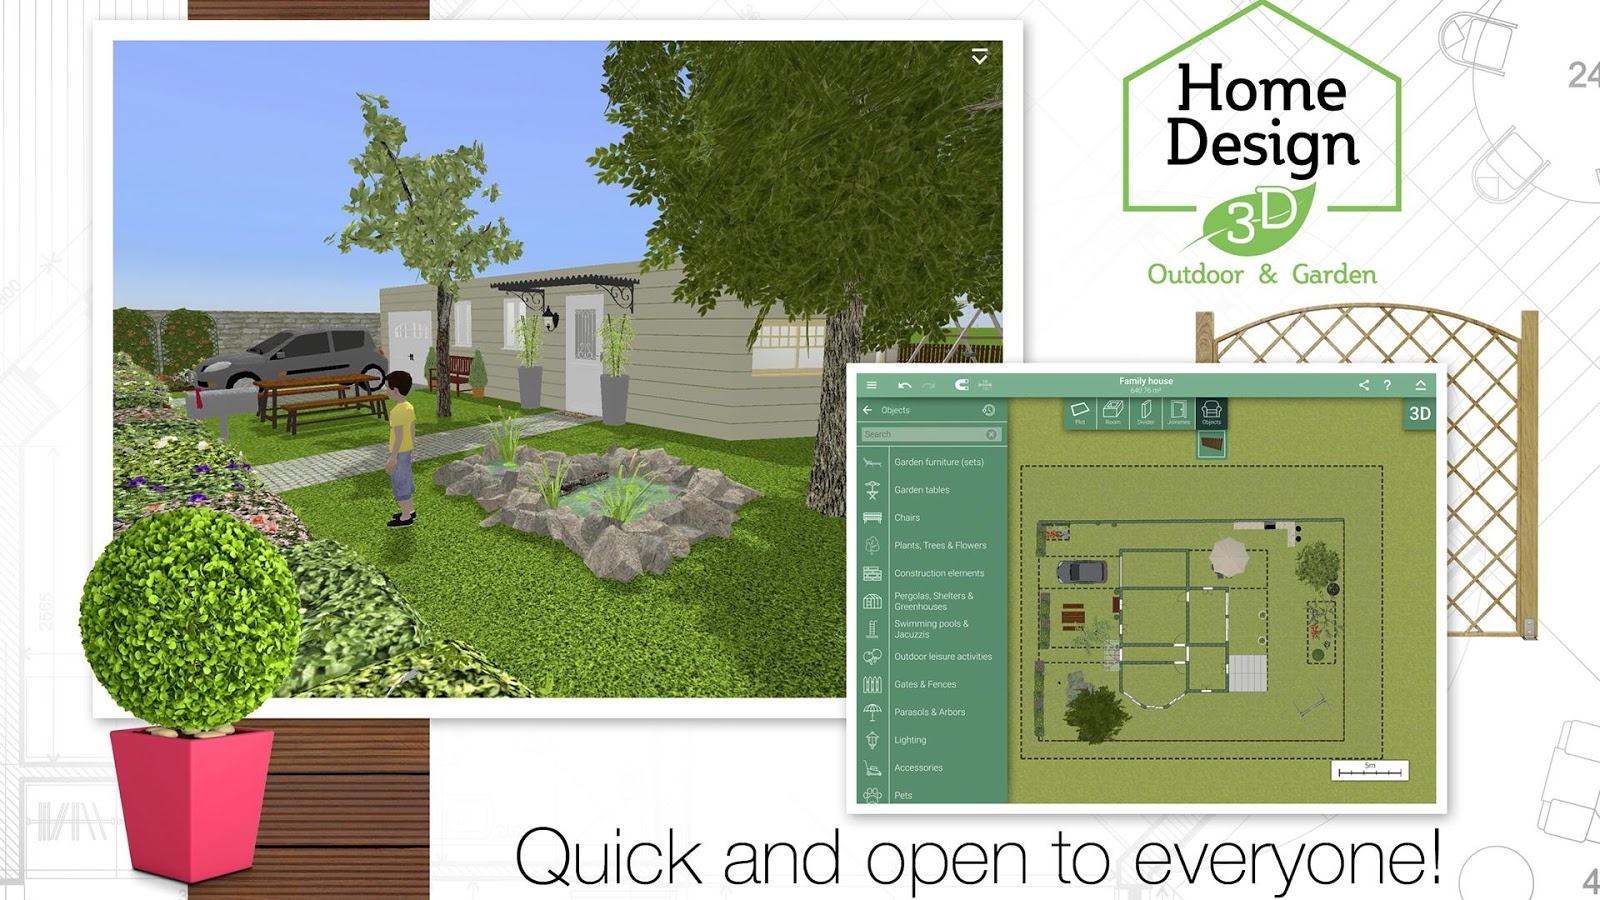 Home design 3d outdoor garden android apps on google play for Outdoor garden design